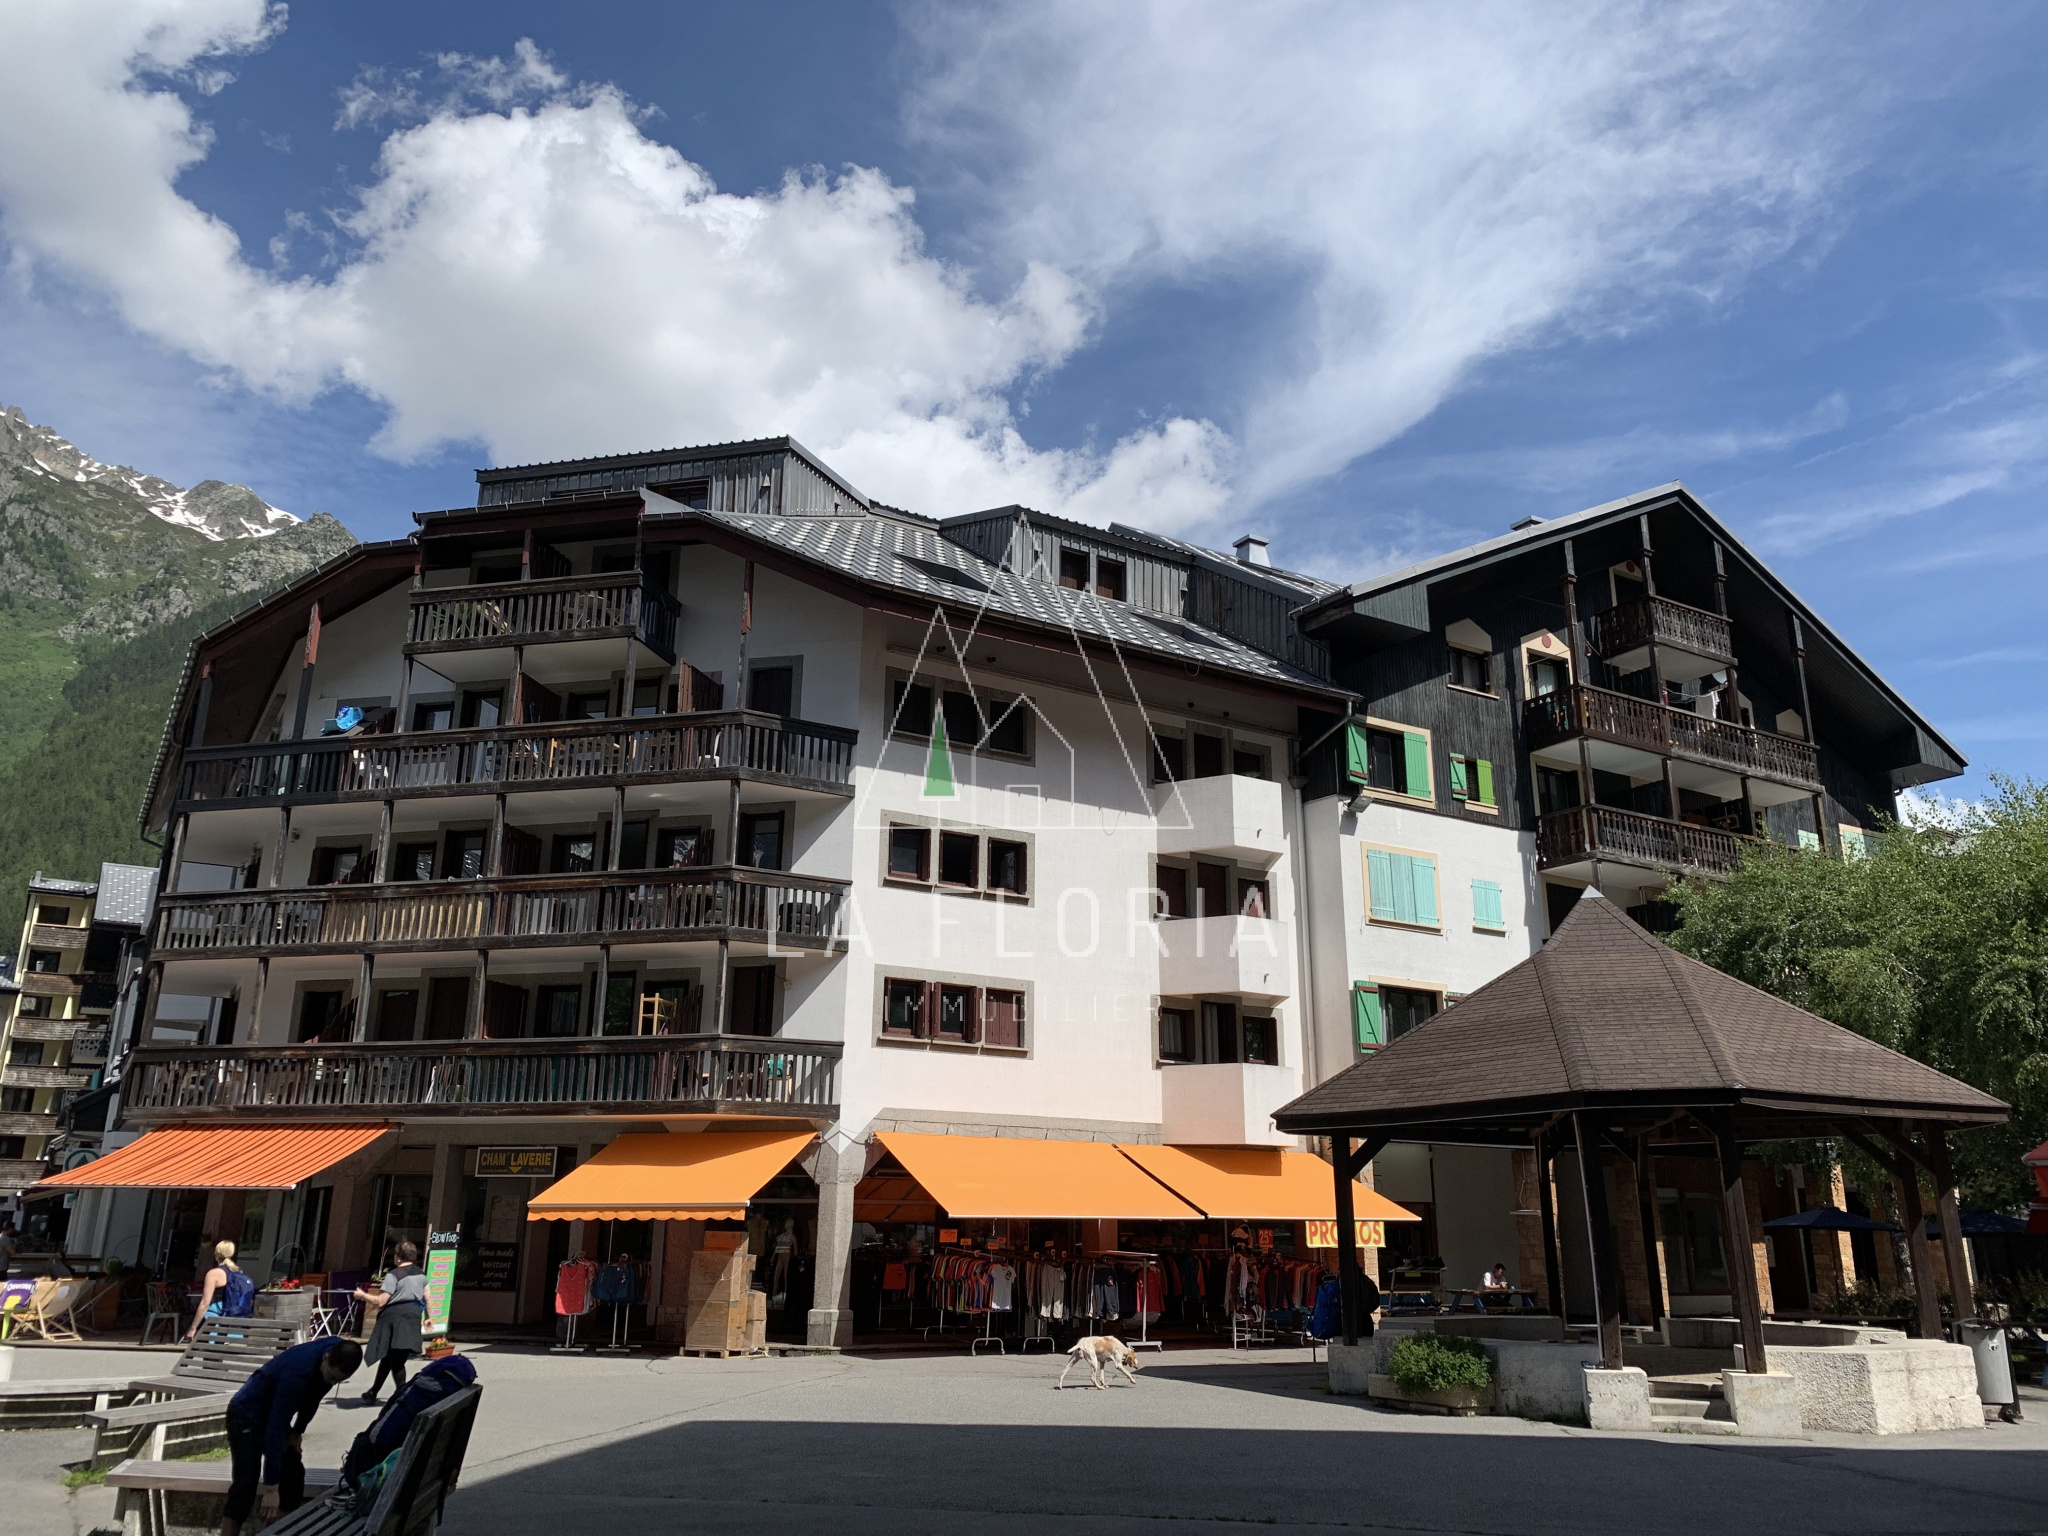 TWO BEDROOM DUPLEX TOP FLOOR APARTMENT, CHAMONIX CENTRE